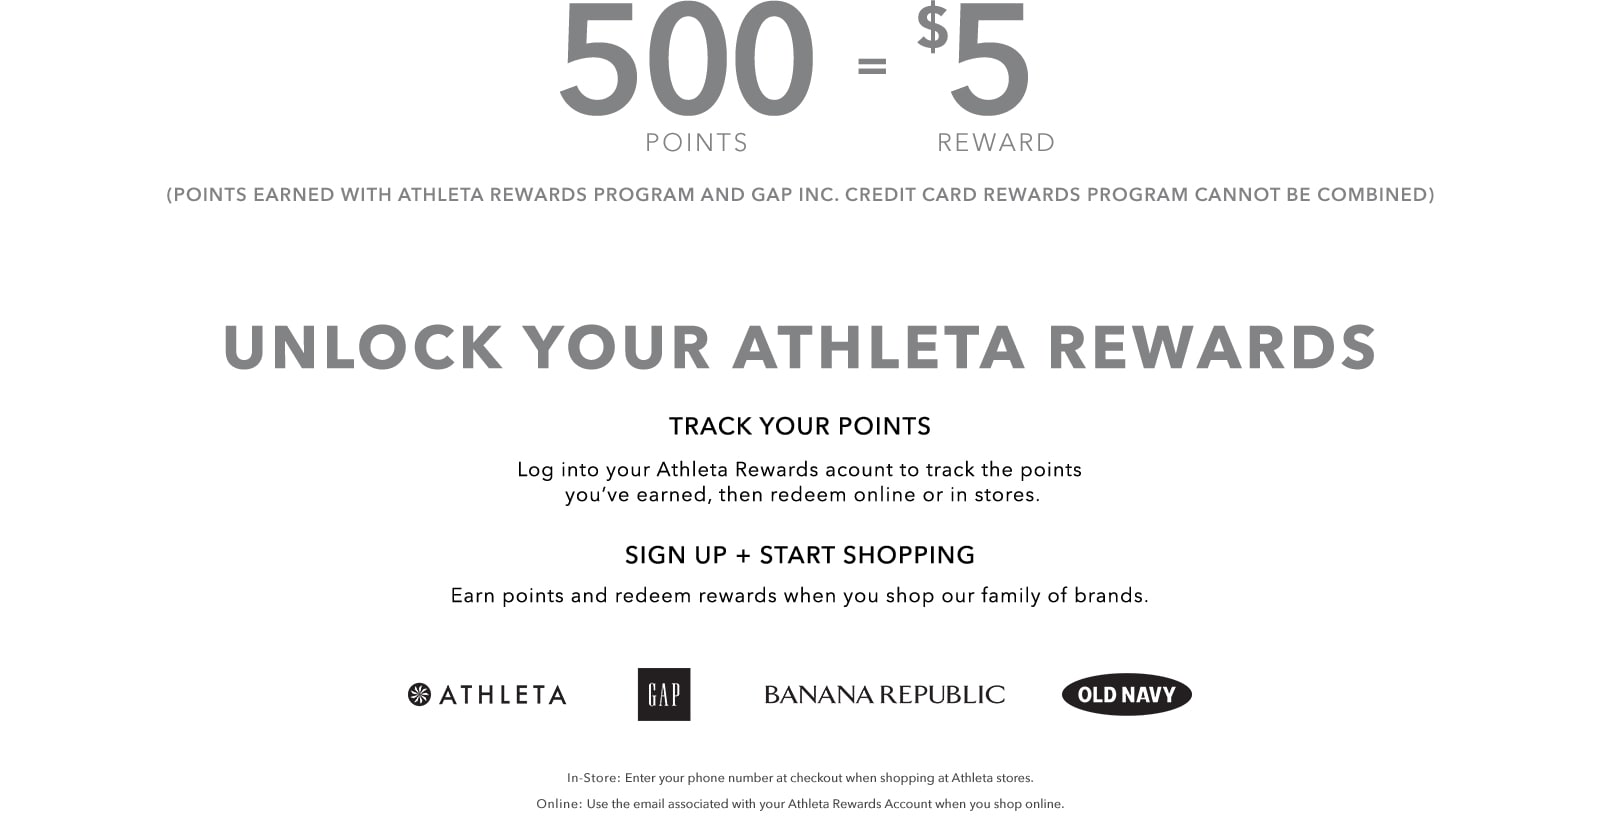 500 points equals $5 rewards. Points earned with Athleta rewards program and gap inc. credit card rewards program cannot be combined. Unlock your athleta rewards. Track your points. Login into your Athleta Rewards account to track the points you'lve earned, then redeem online or in stores. Sign up and start shopping. Earn points and redeem rewards when you shop our family of brands. In store: Enter your phone number at checkout when shopping at Athleta stores. Online: Use the email associated with your Athleta Rewards Account when you shop online.